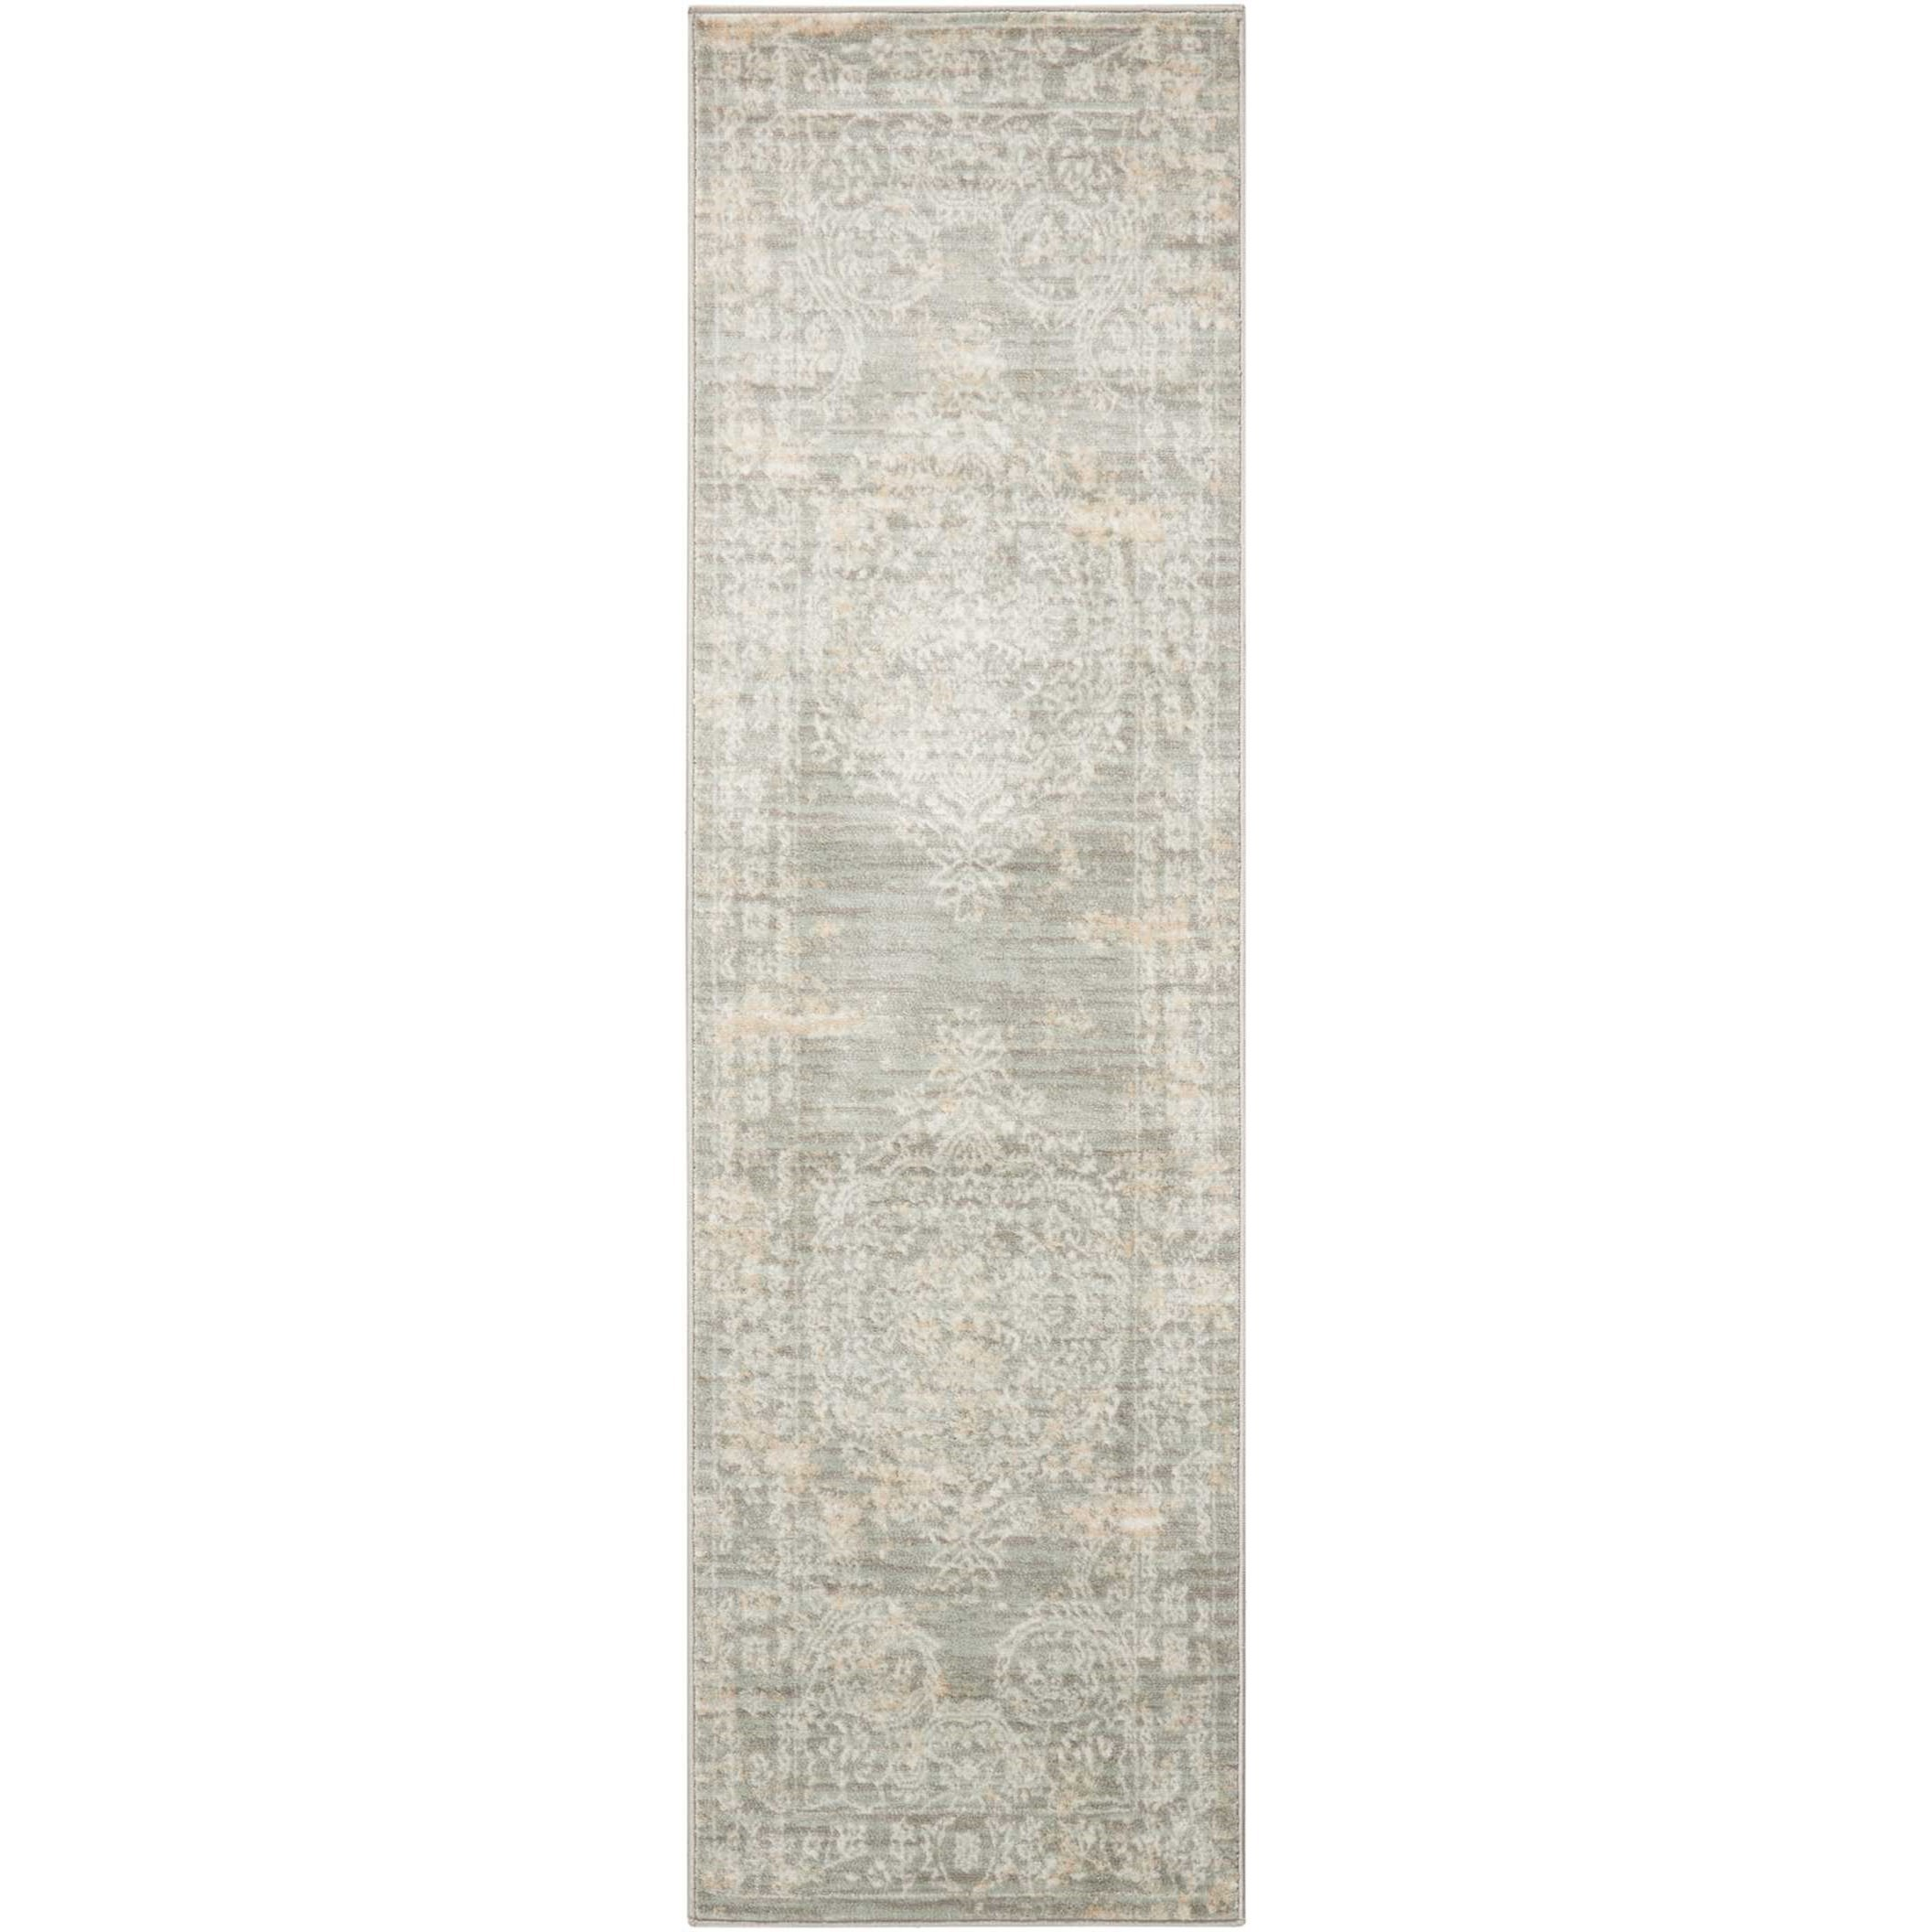 "Euphoria 2'2"" X 7'6"" Grey Rug by Nourison at Sprintz Furniture"